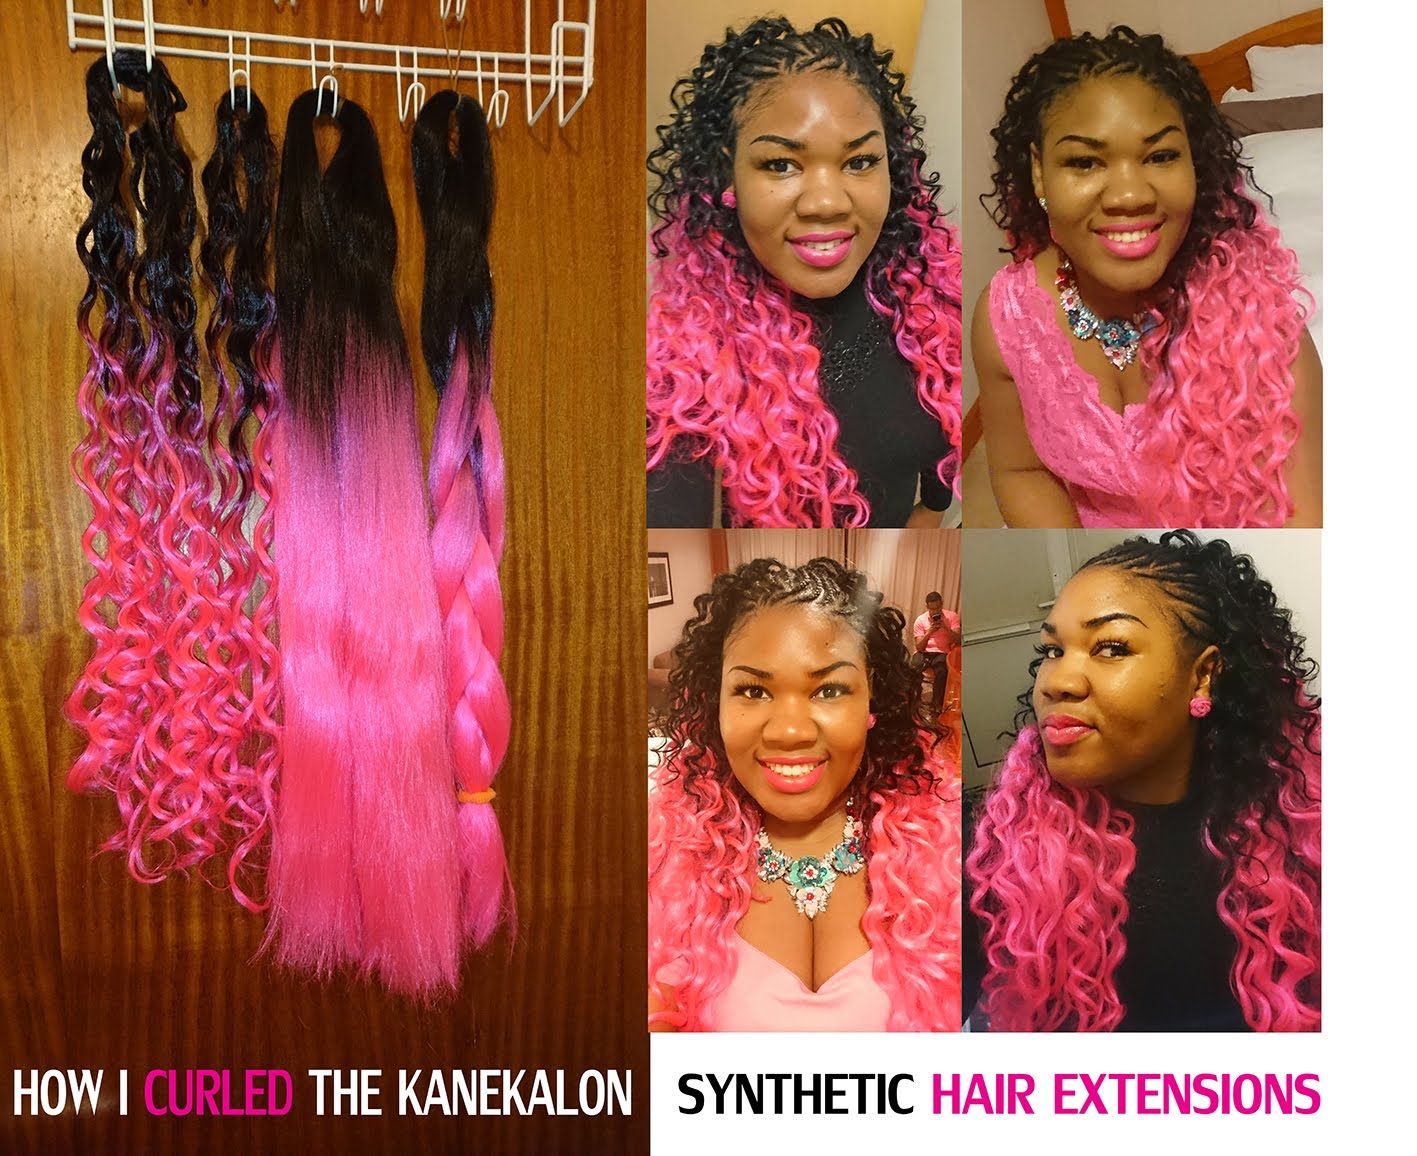 How to curl synthetic hair with flexi rods foam rollers hot pink how to curl synthetic hair with flexi rods foam rollers hot pink black pmusecretfo Choice Image